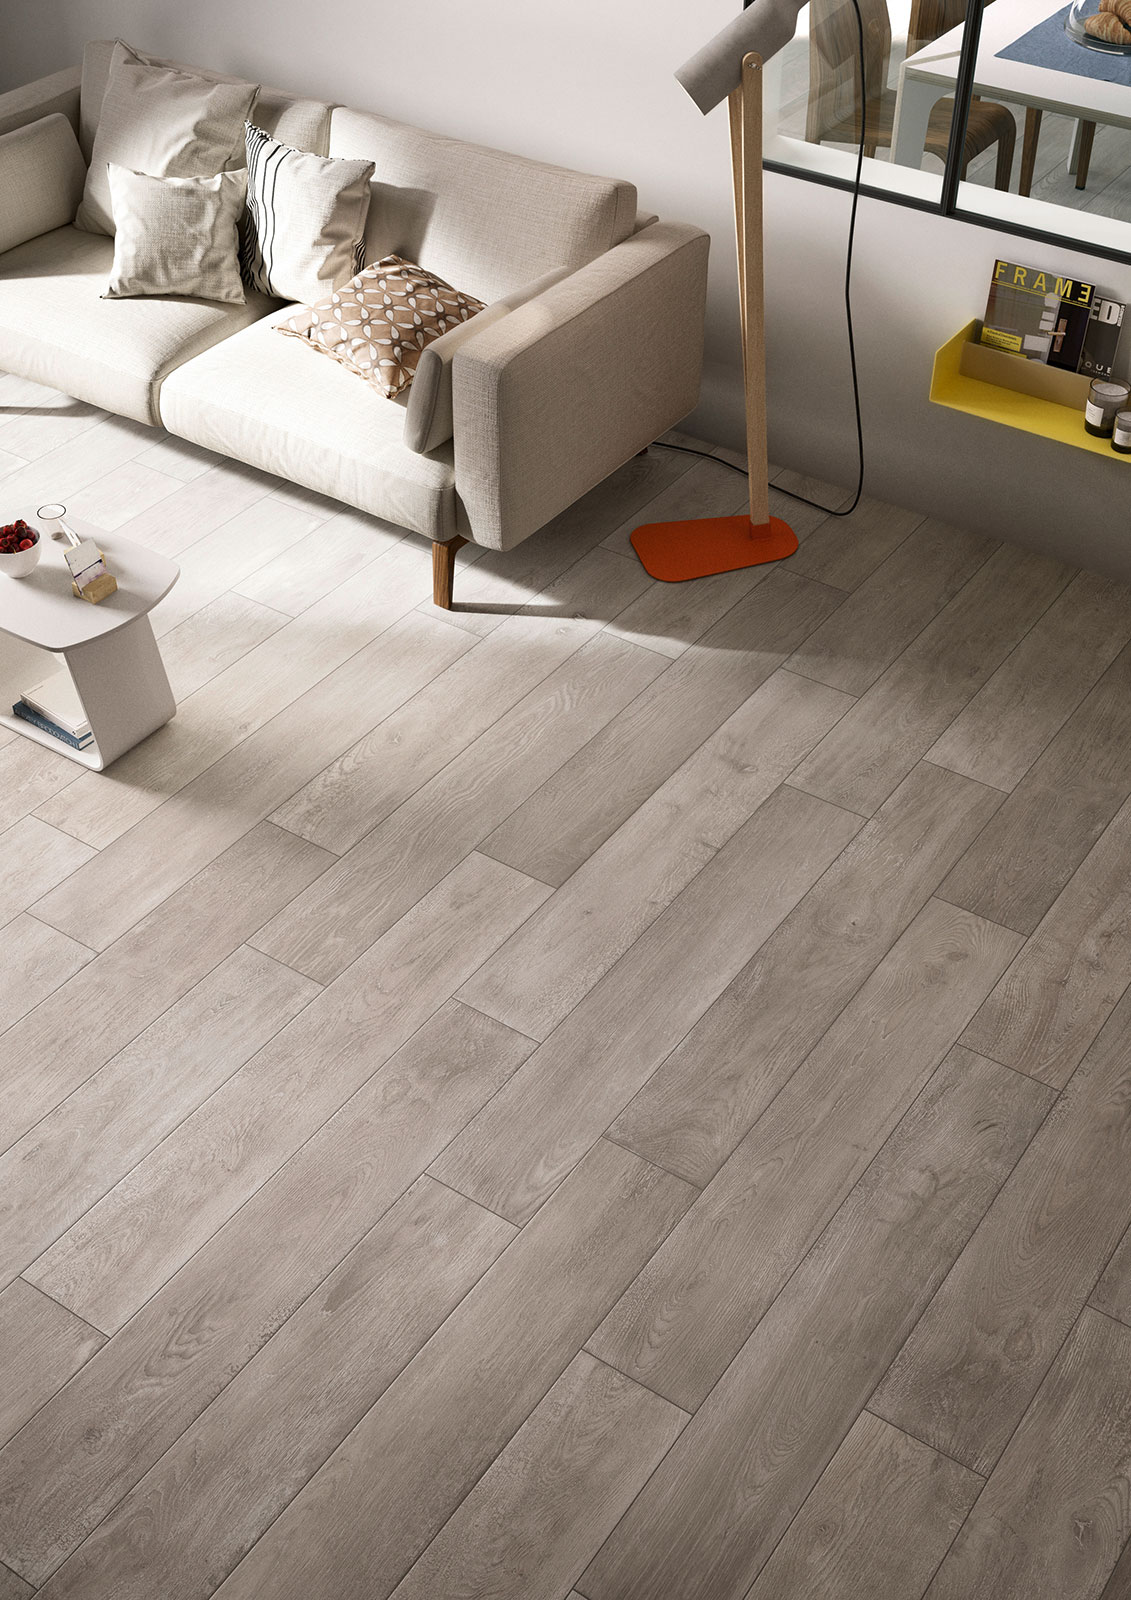 Treverktime Ceramic Tiles Marazzi_6535 Part 98